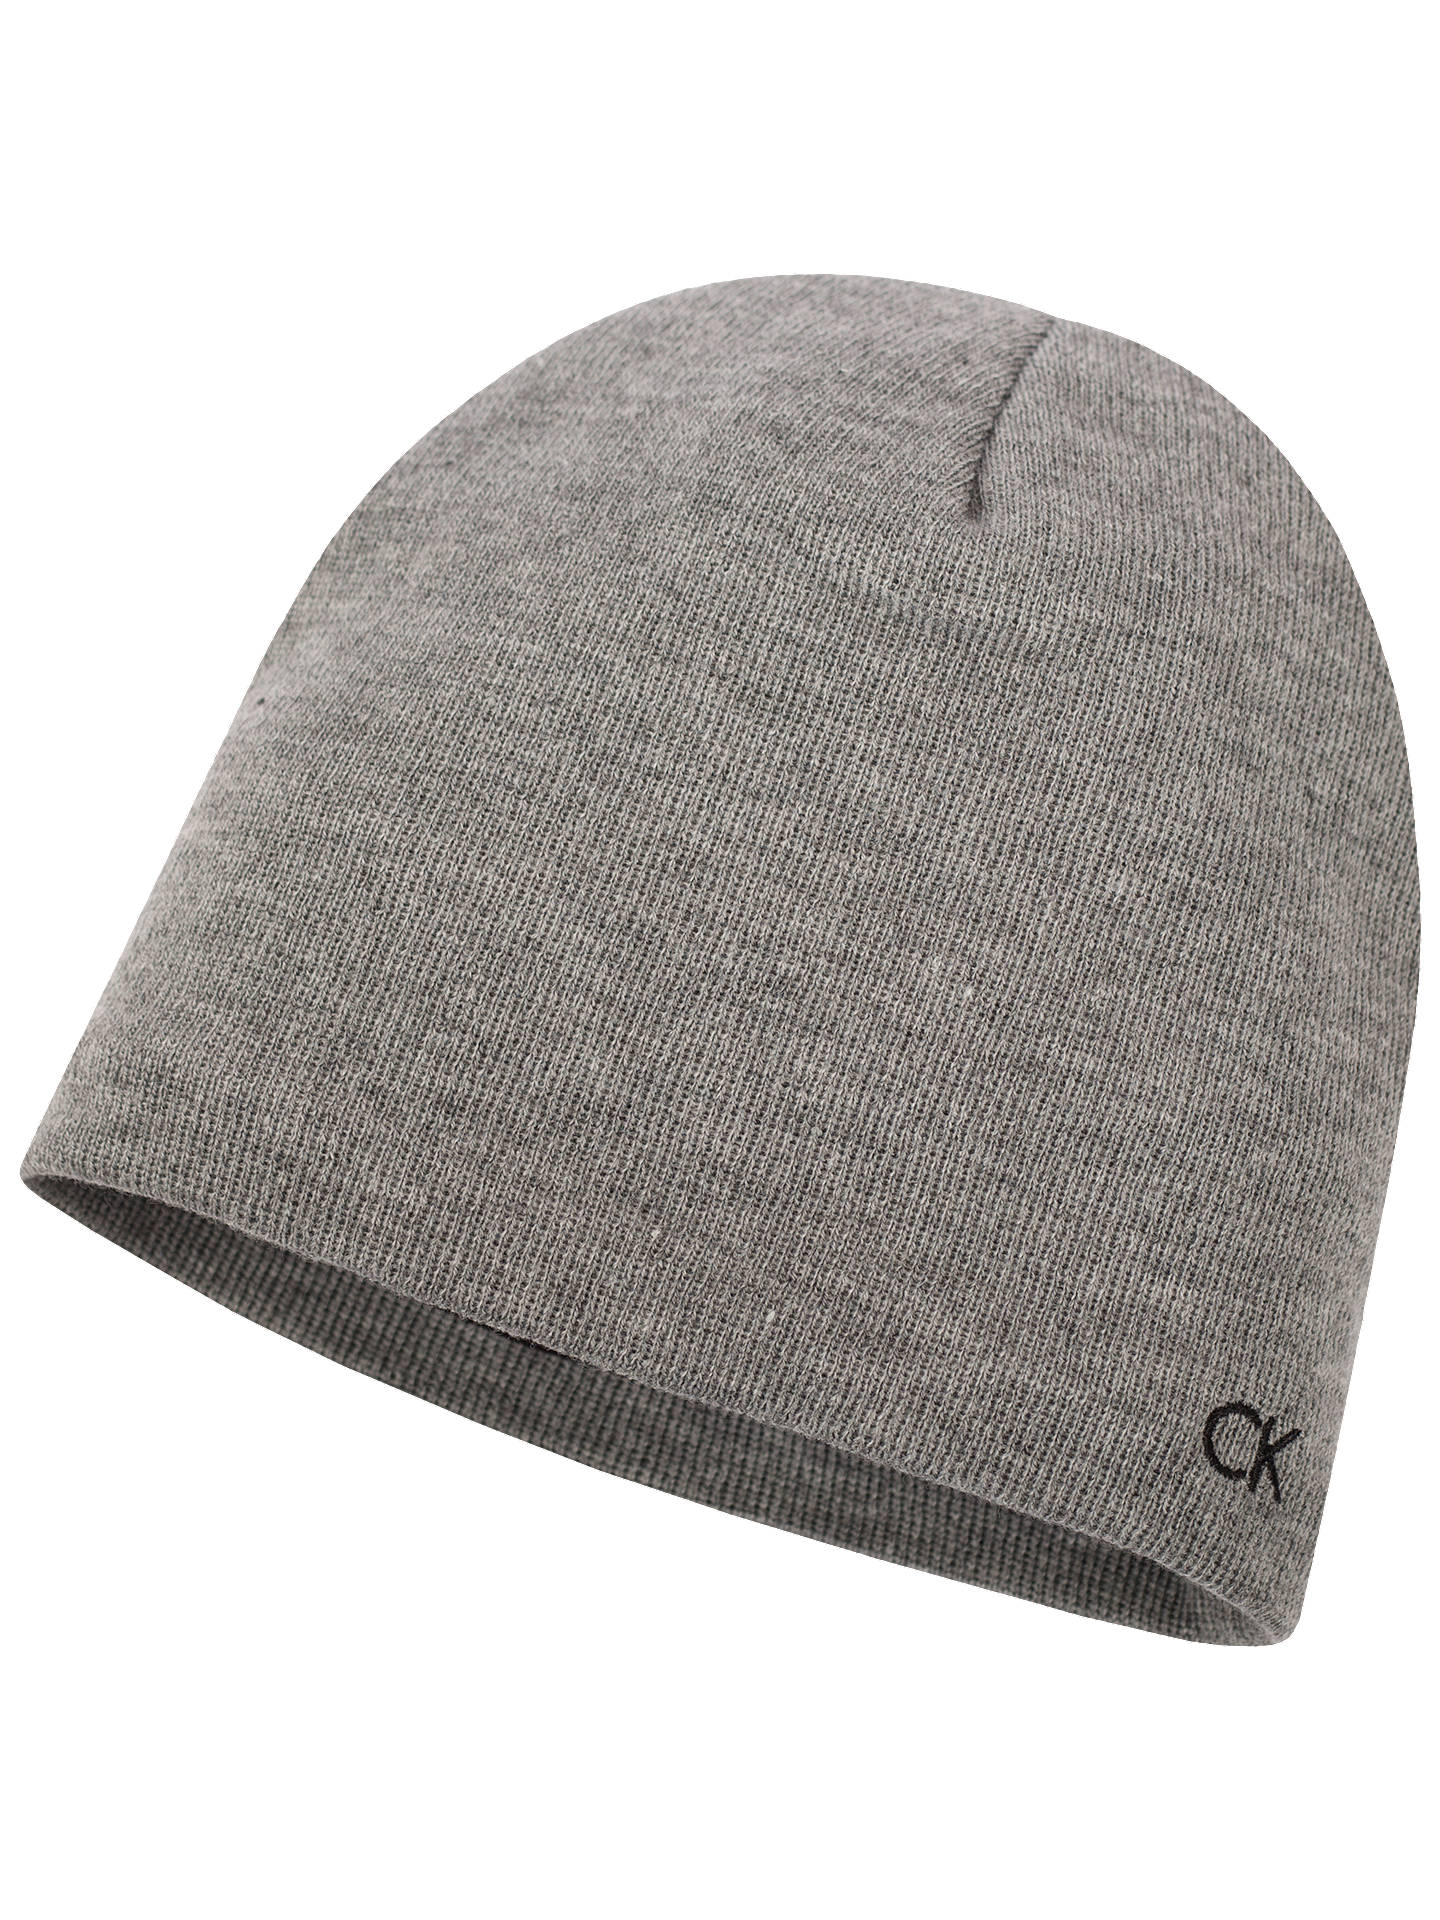 89418e77ed6 Buy Calvin Klein Golf Fleece Lined Beanie